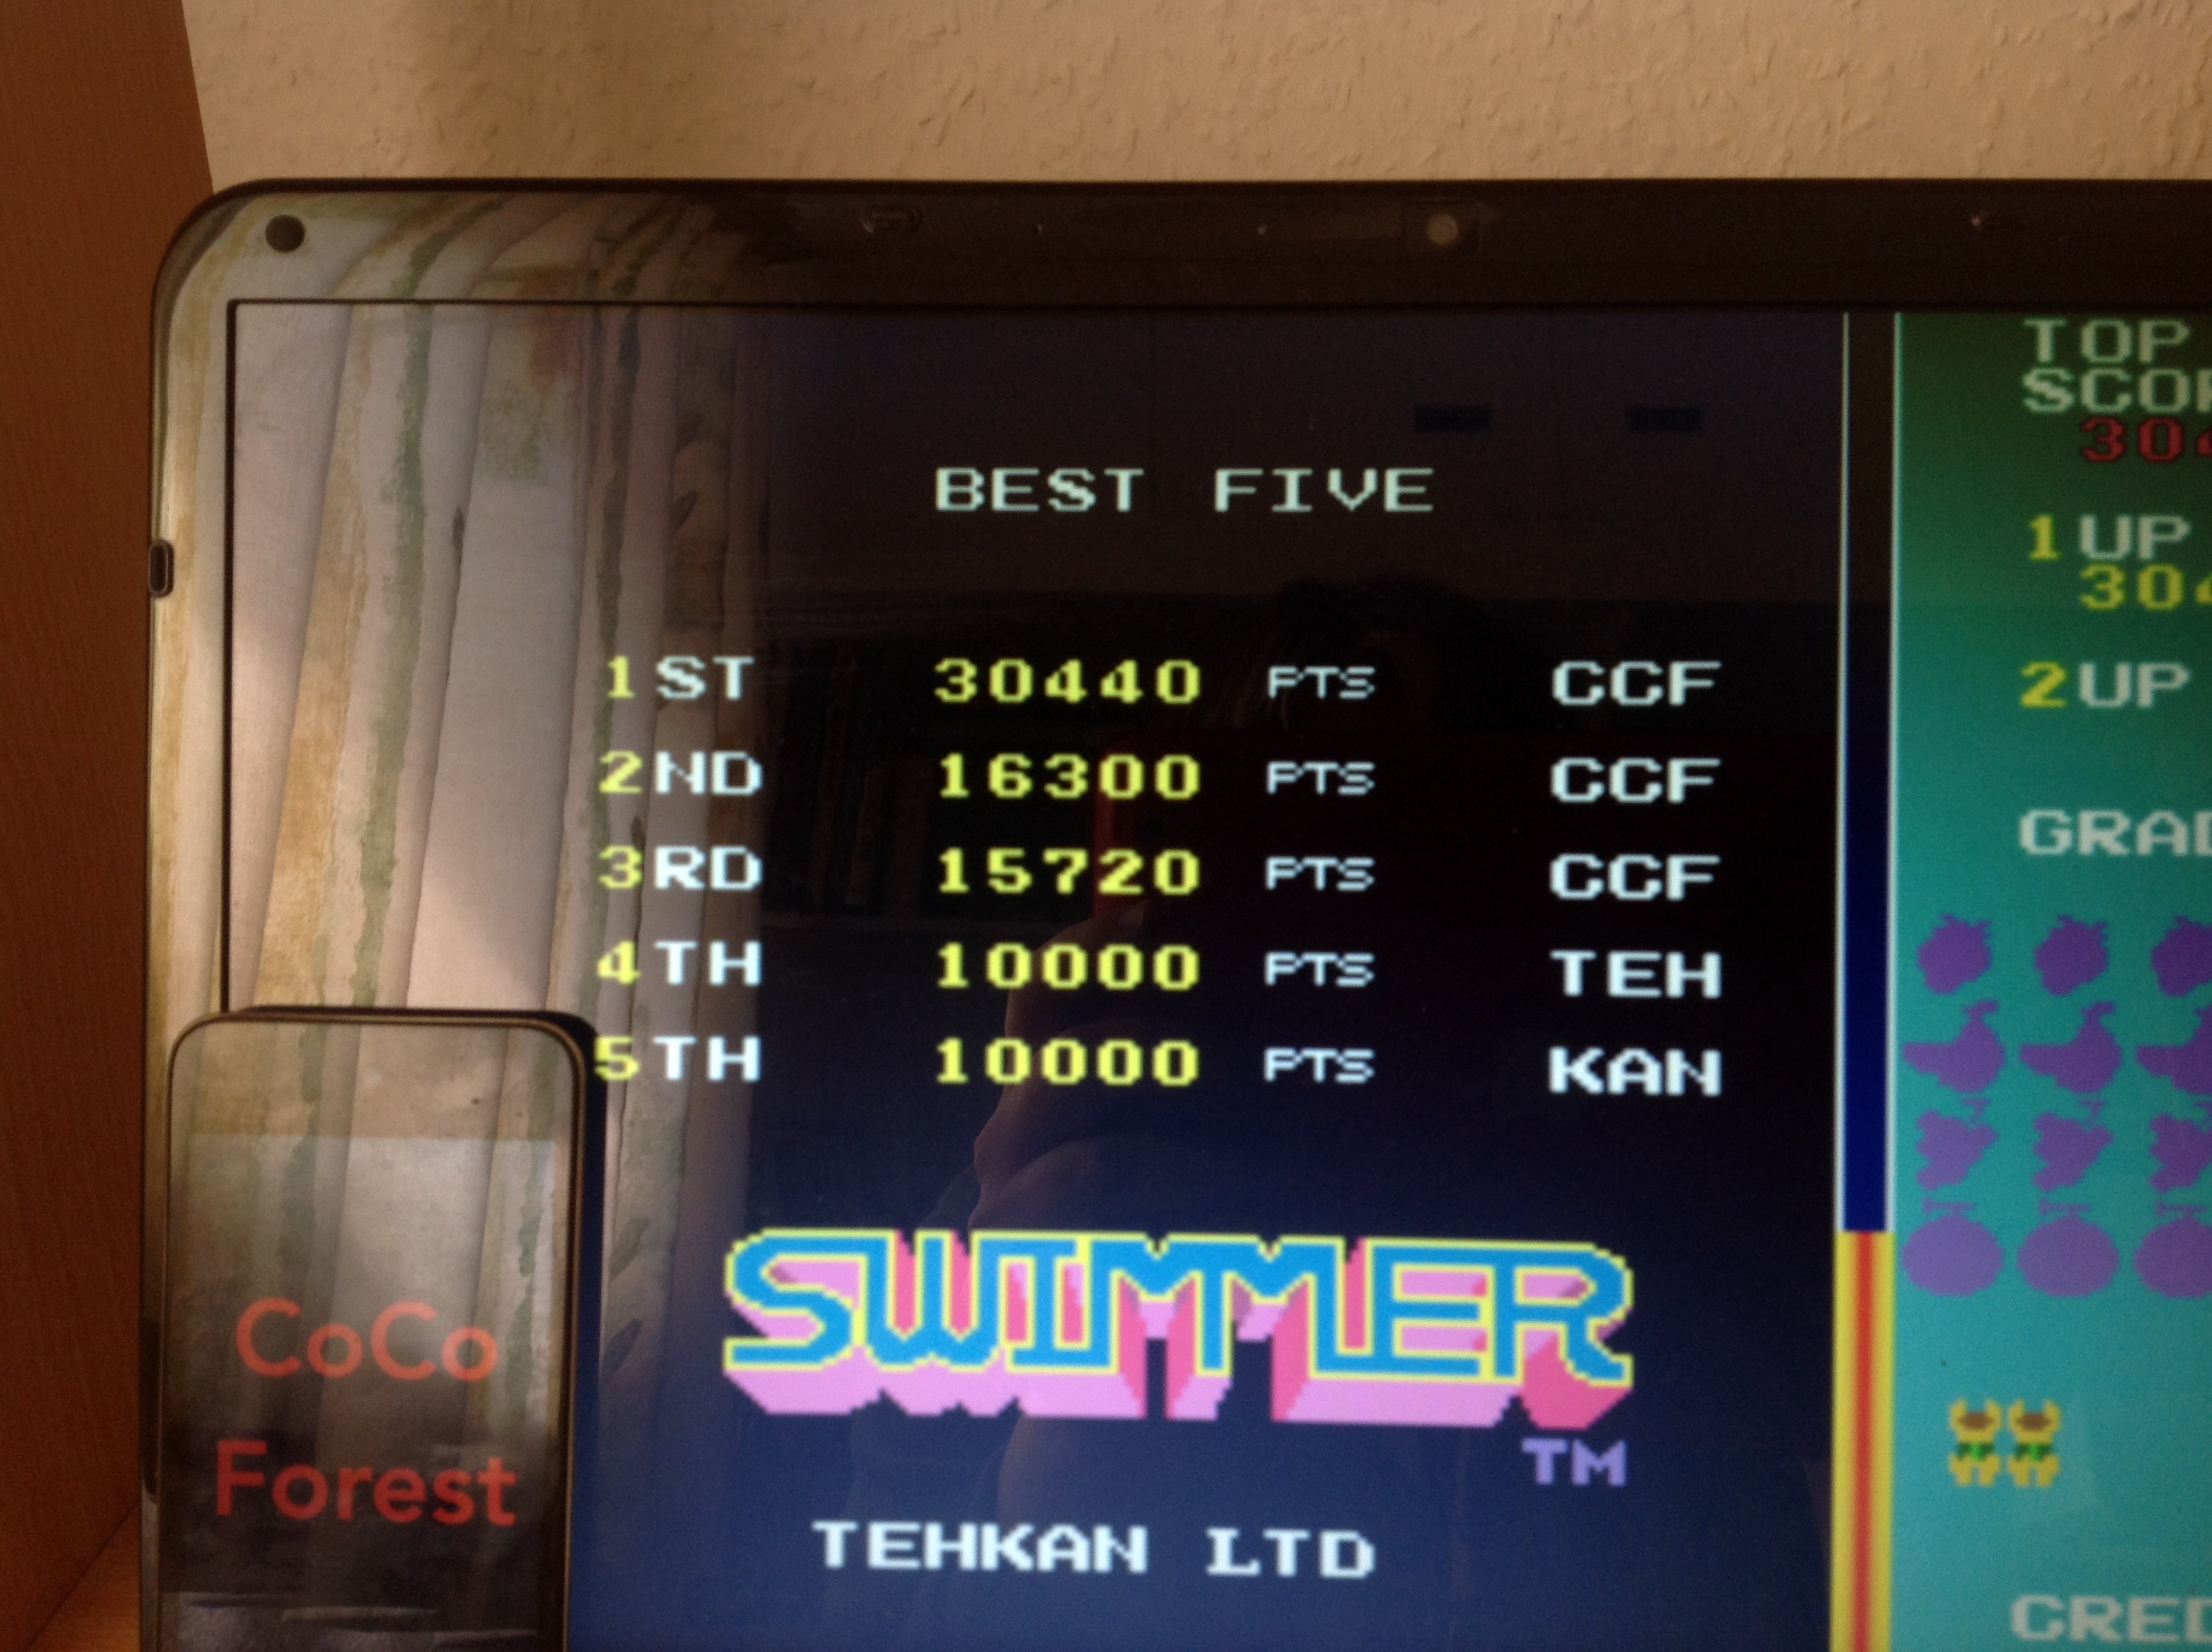 CoCoForest: Swimmer [swimmer] (Arcade Emulated / M.A.M.E.) 30,440 points on 2015-04-21 07:00:09